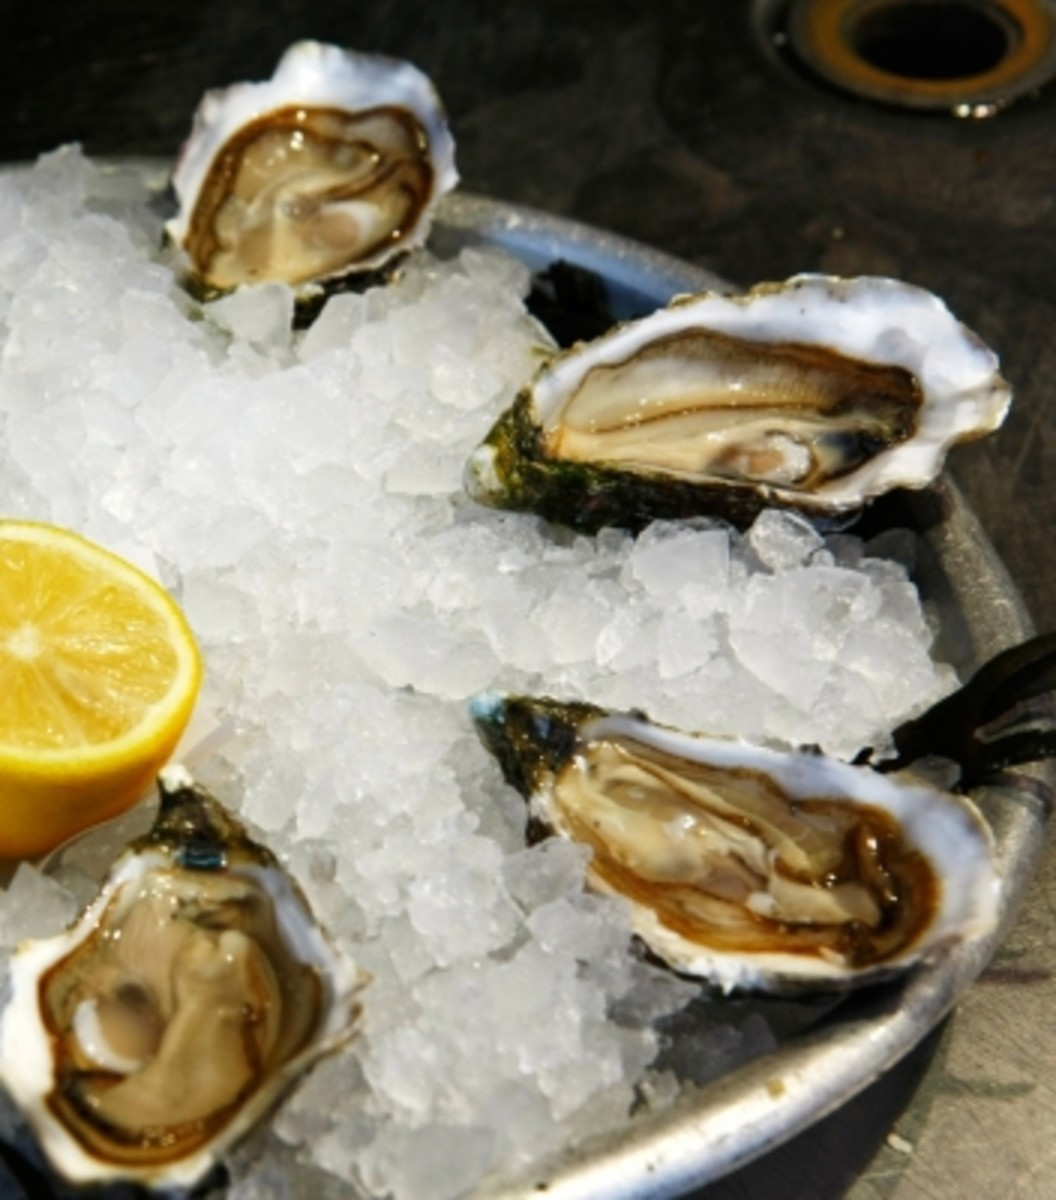 Oysters are a natural source of B12.